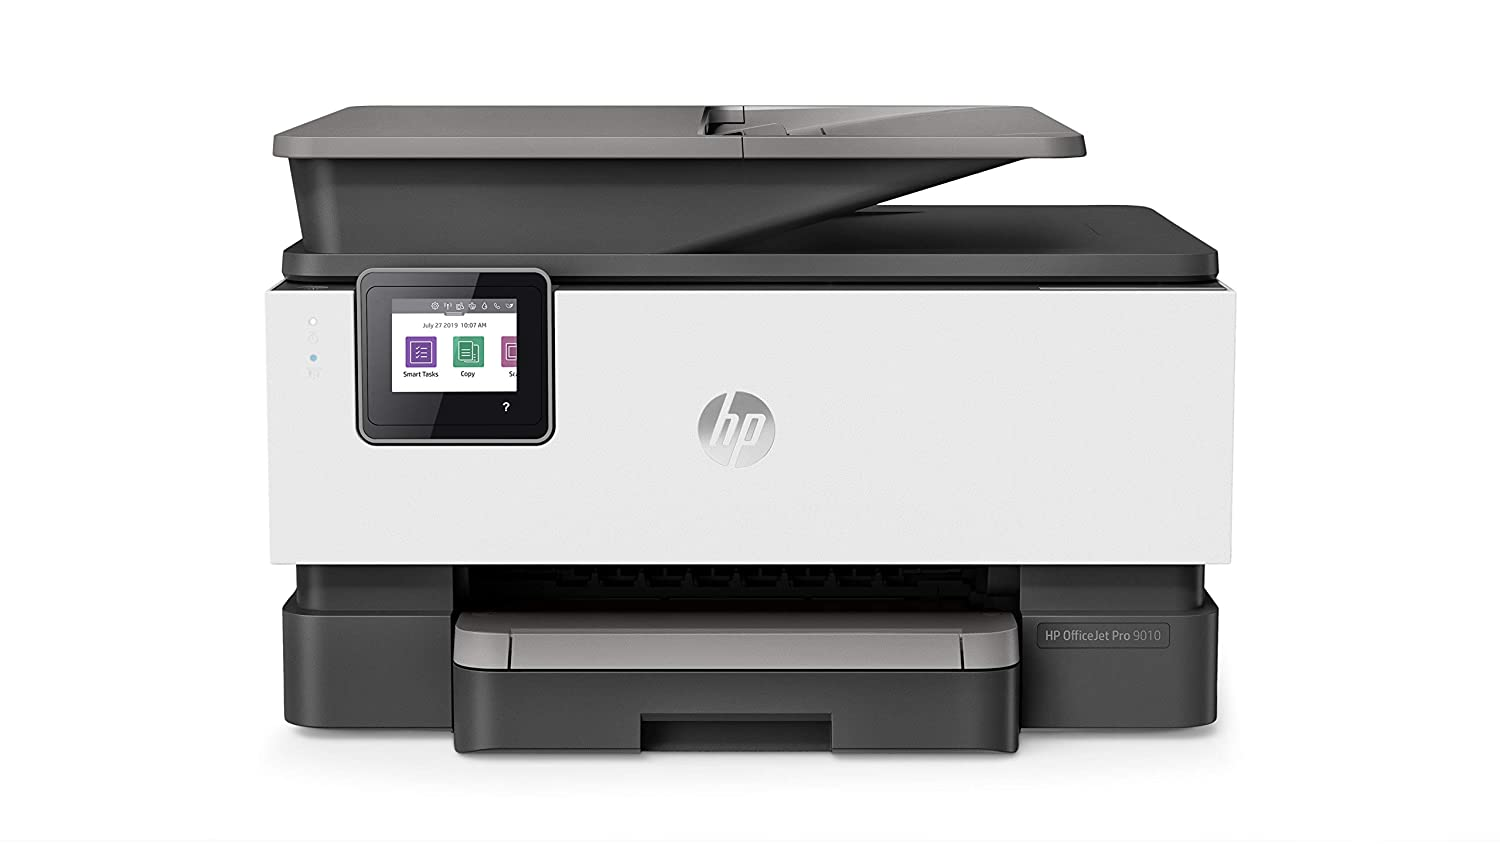 HP OfficeJet Pro 9010 All-in-One Wireless Printer, Instant Ink Ready,  Print, Scan, Copy from Your Phone and Voice Activated (Works with Google